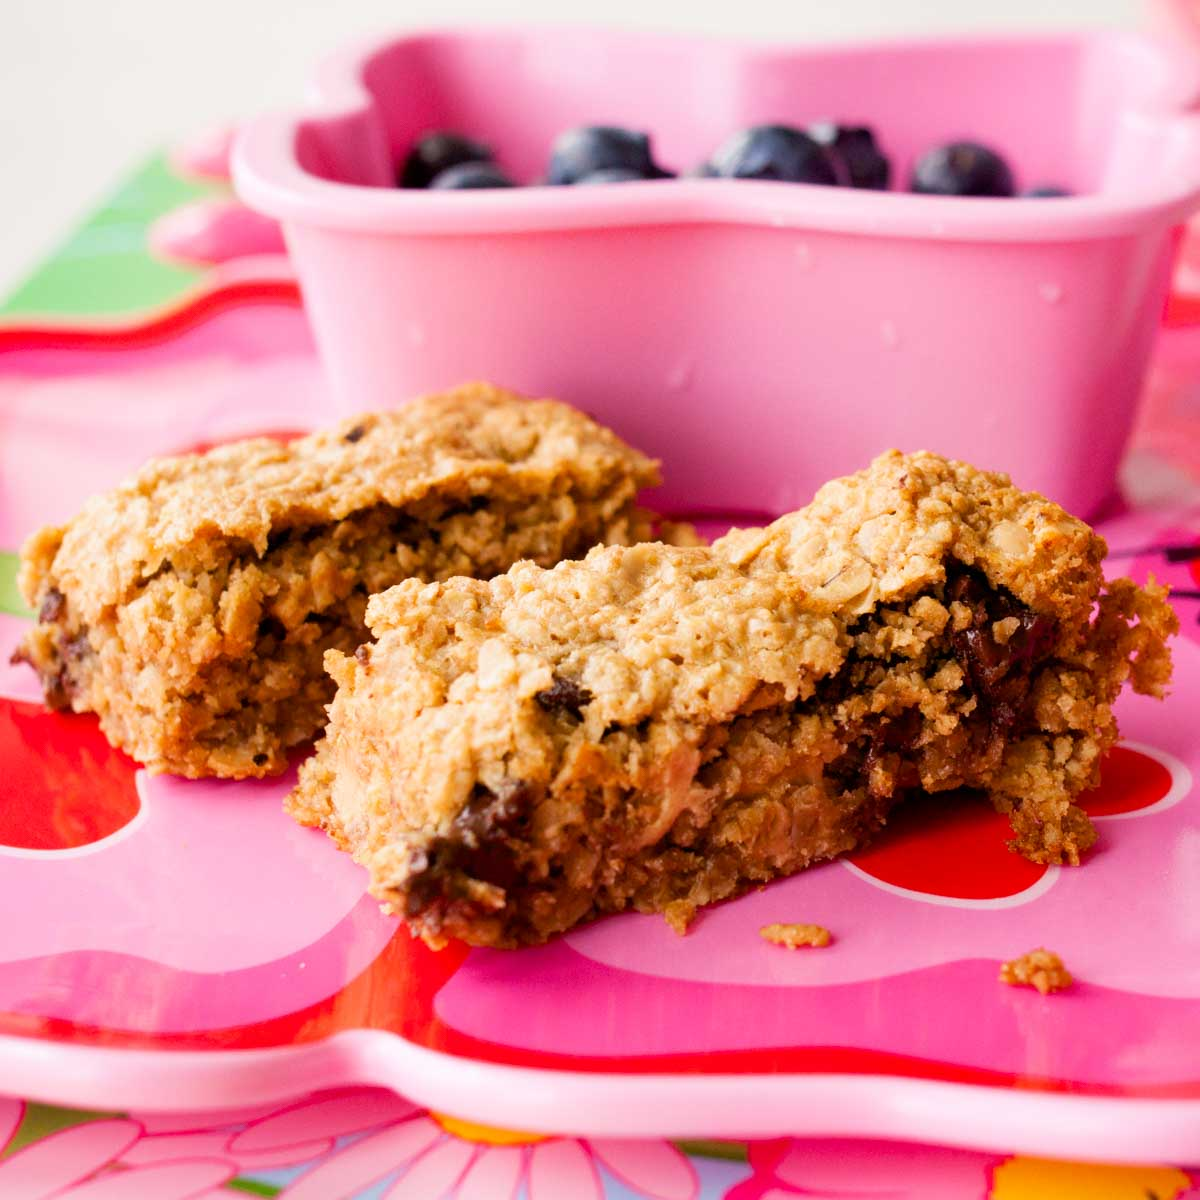 Two homemade peanut butter granola bars with chocolate chips sit on a pink butterfly plate.